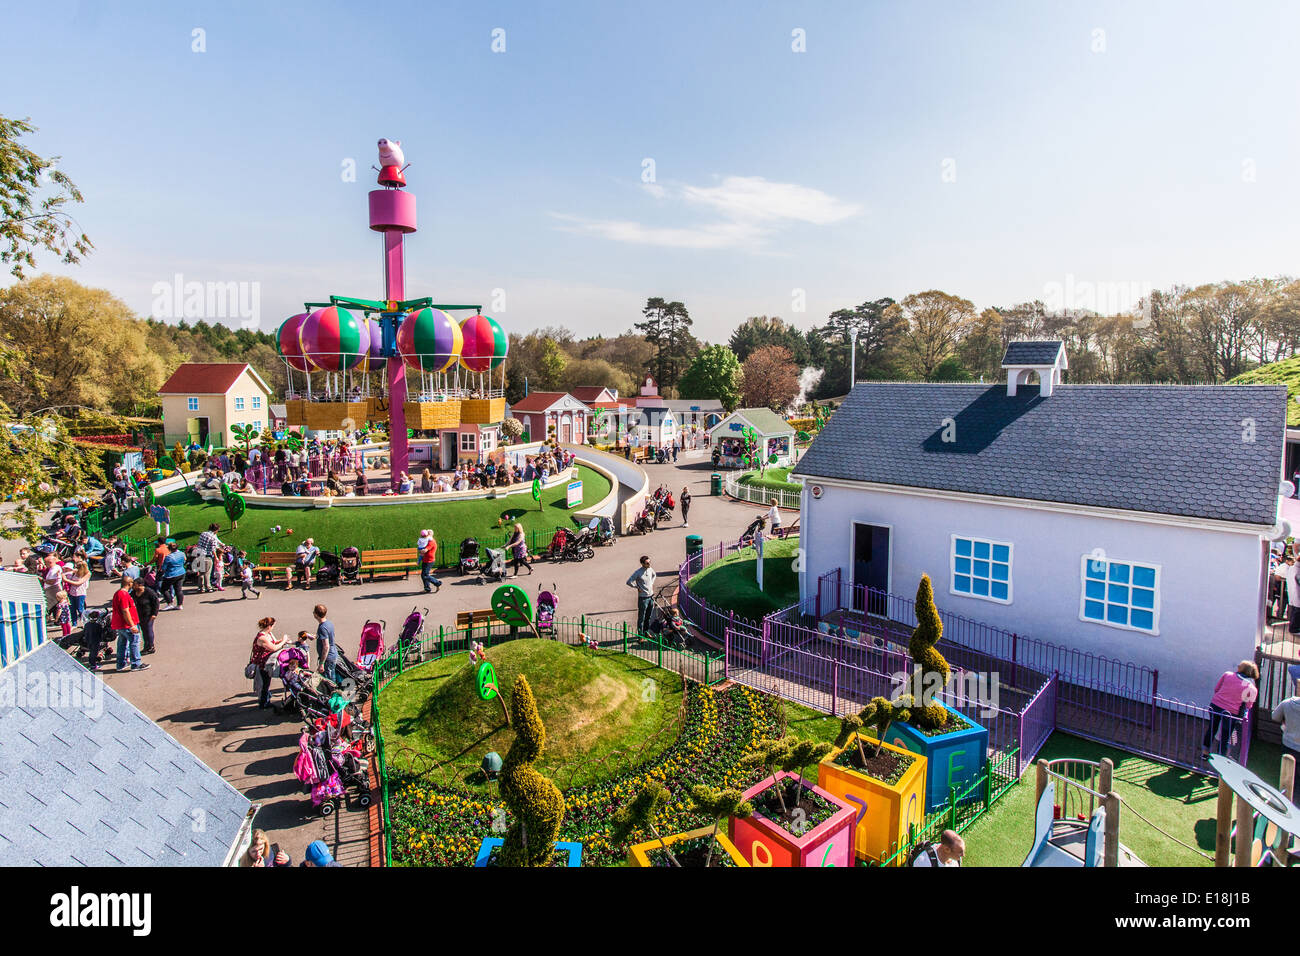 Peppa Pig World, Paultons Park, Southampton, England, United Kingdom. Stock Photo